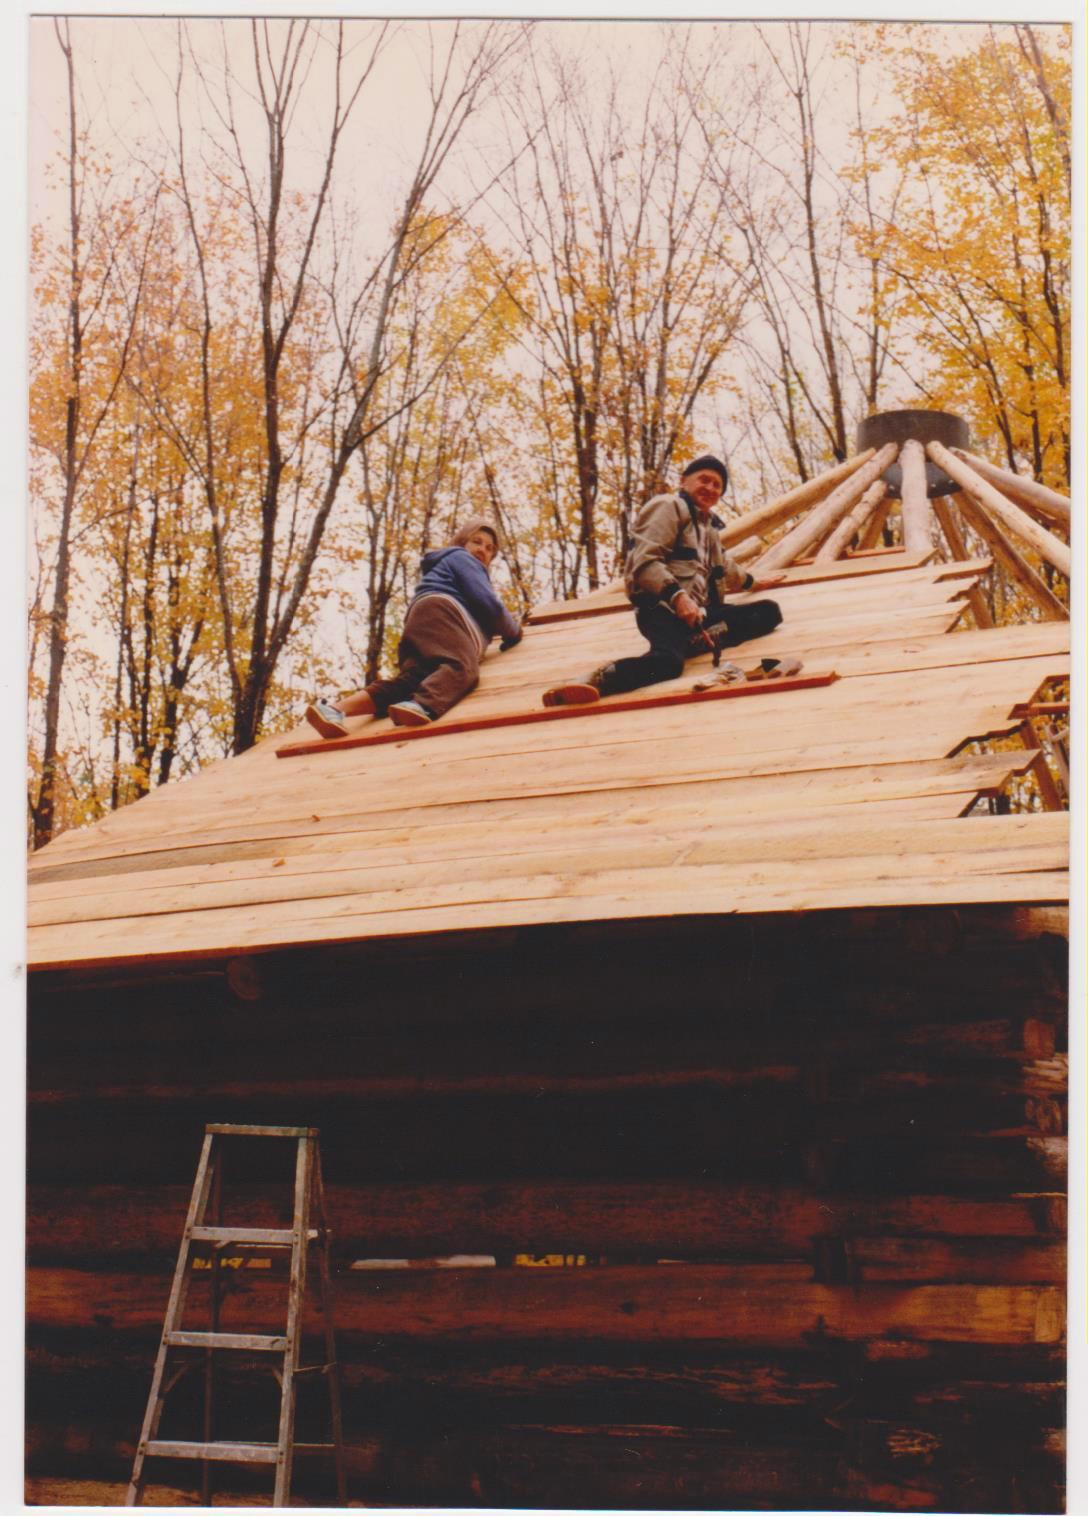 Rochelle Dale's Aunt Mildred and her dad nailing down the boards on the Zender and Dale home roof in the Yellow Dog Watershed.